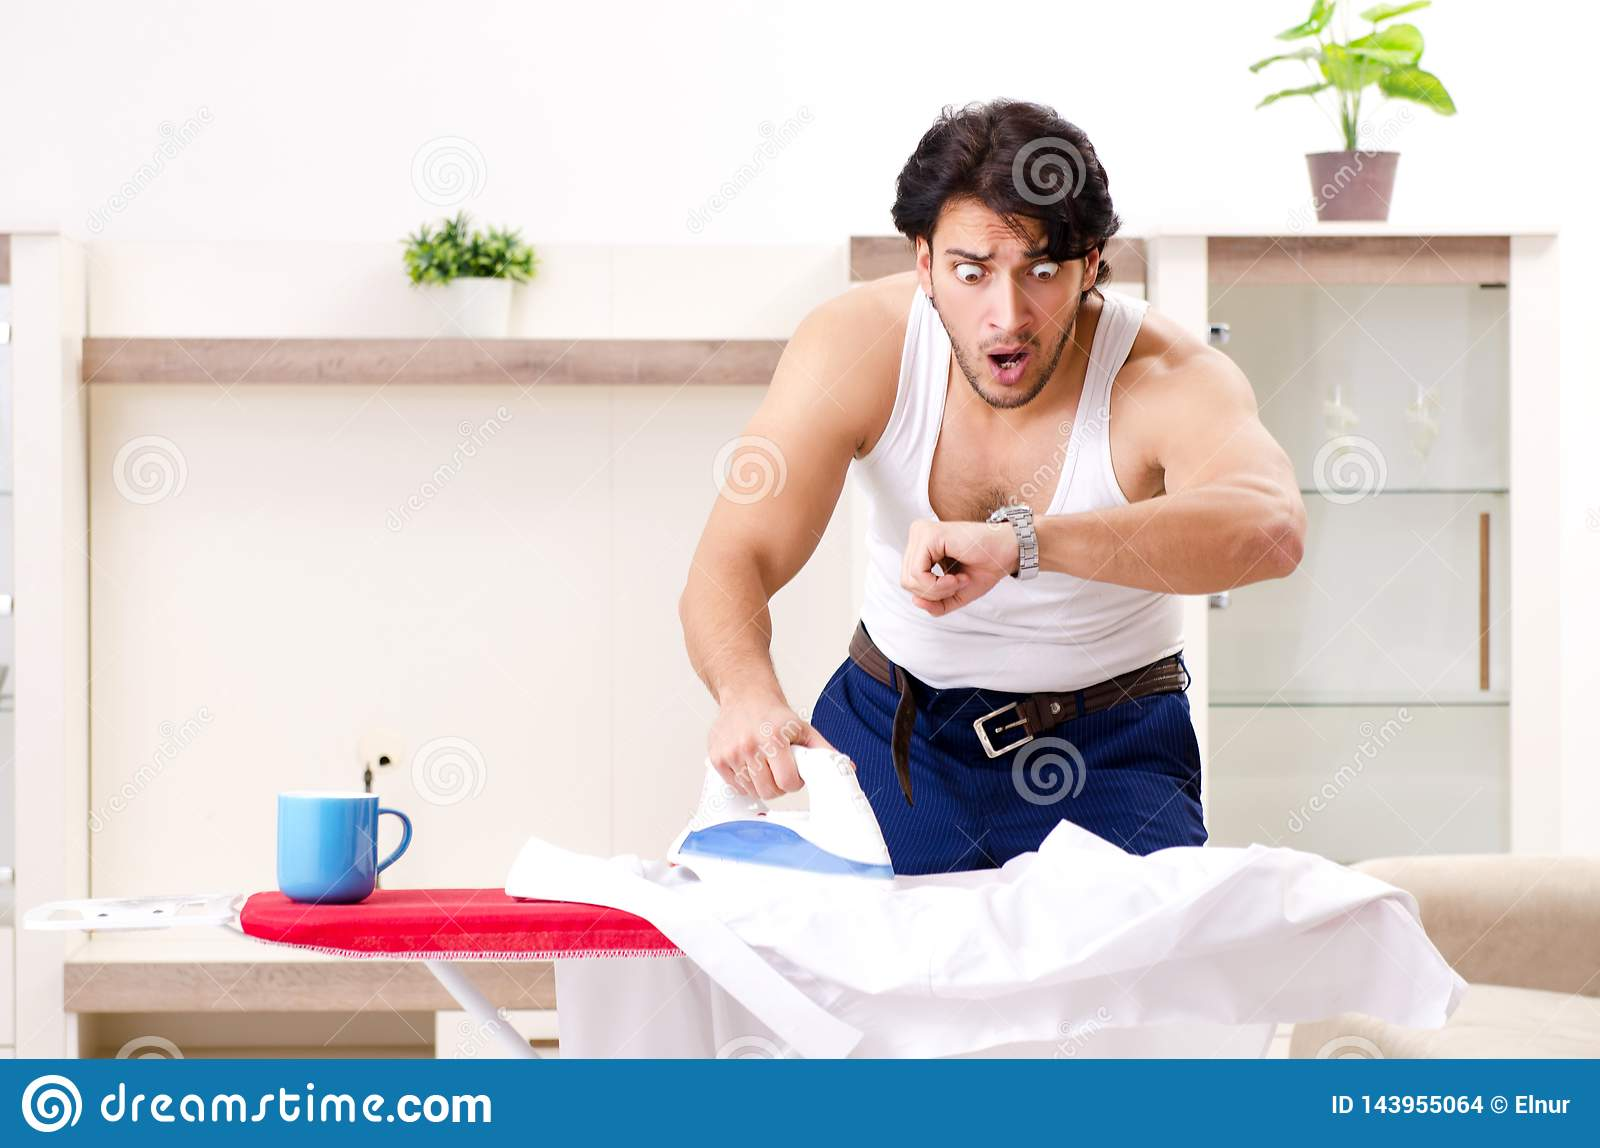 Ams Nude the young man ironing in the bedroom stock photo - image of